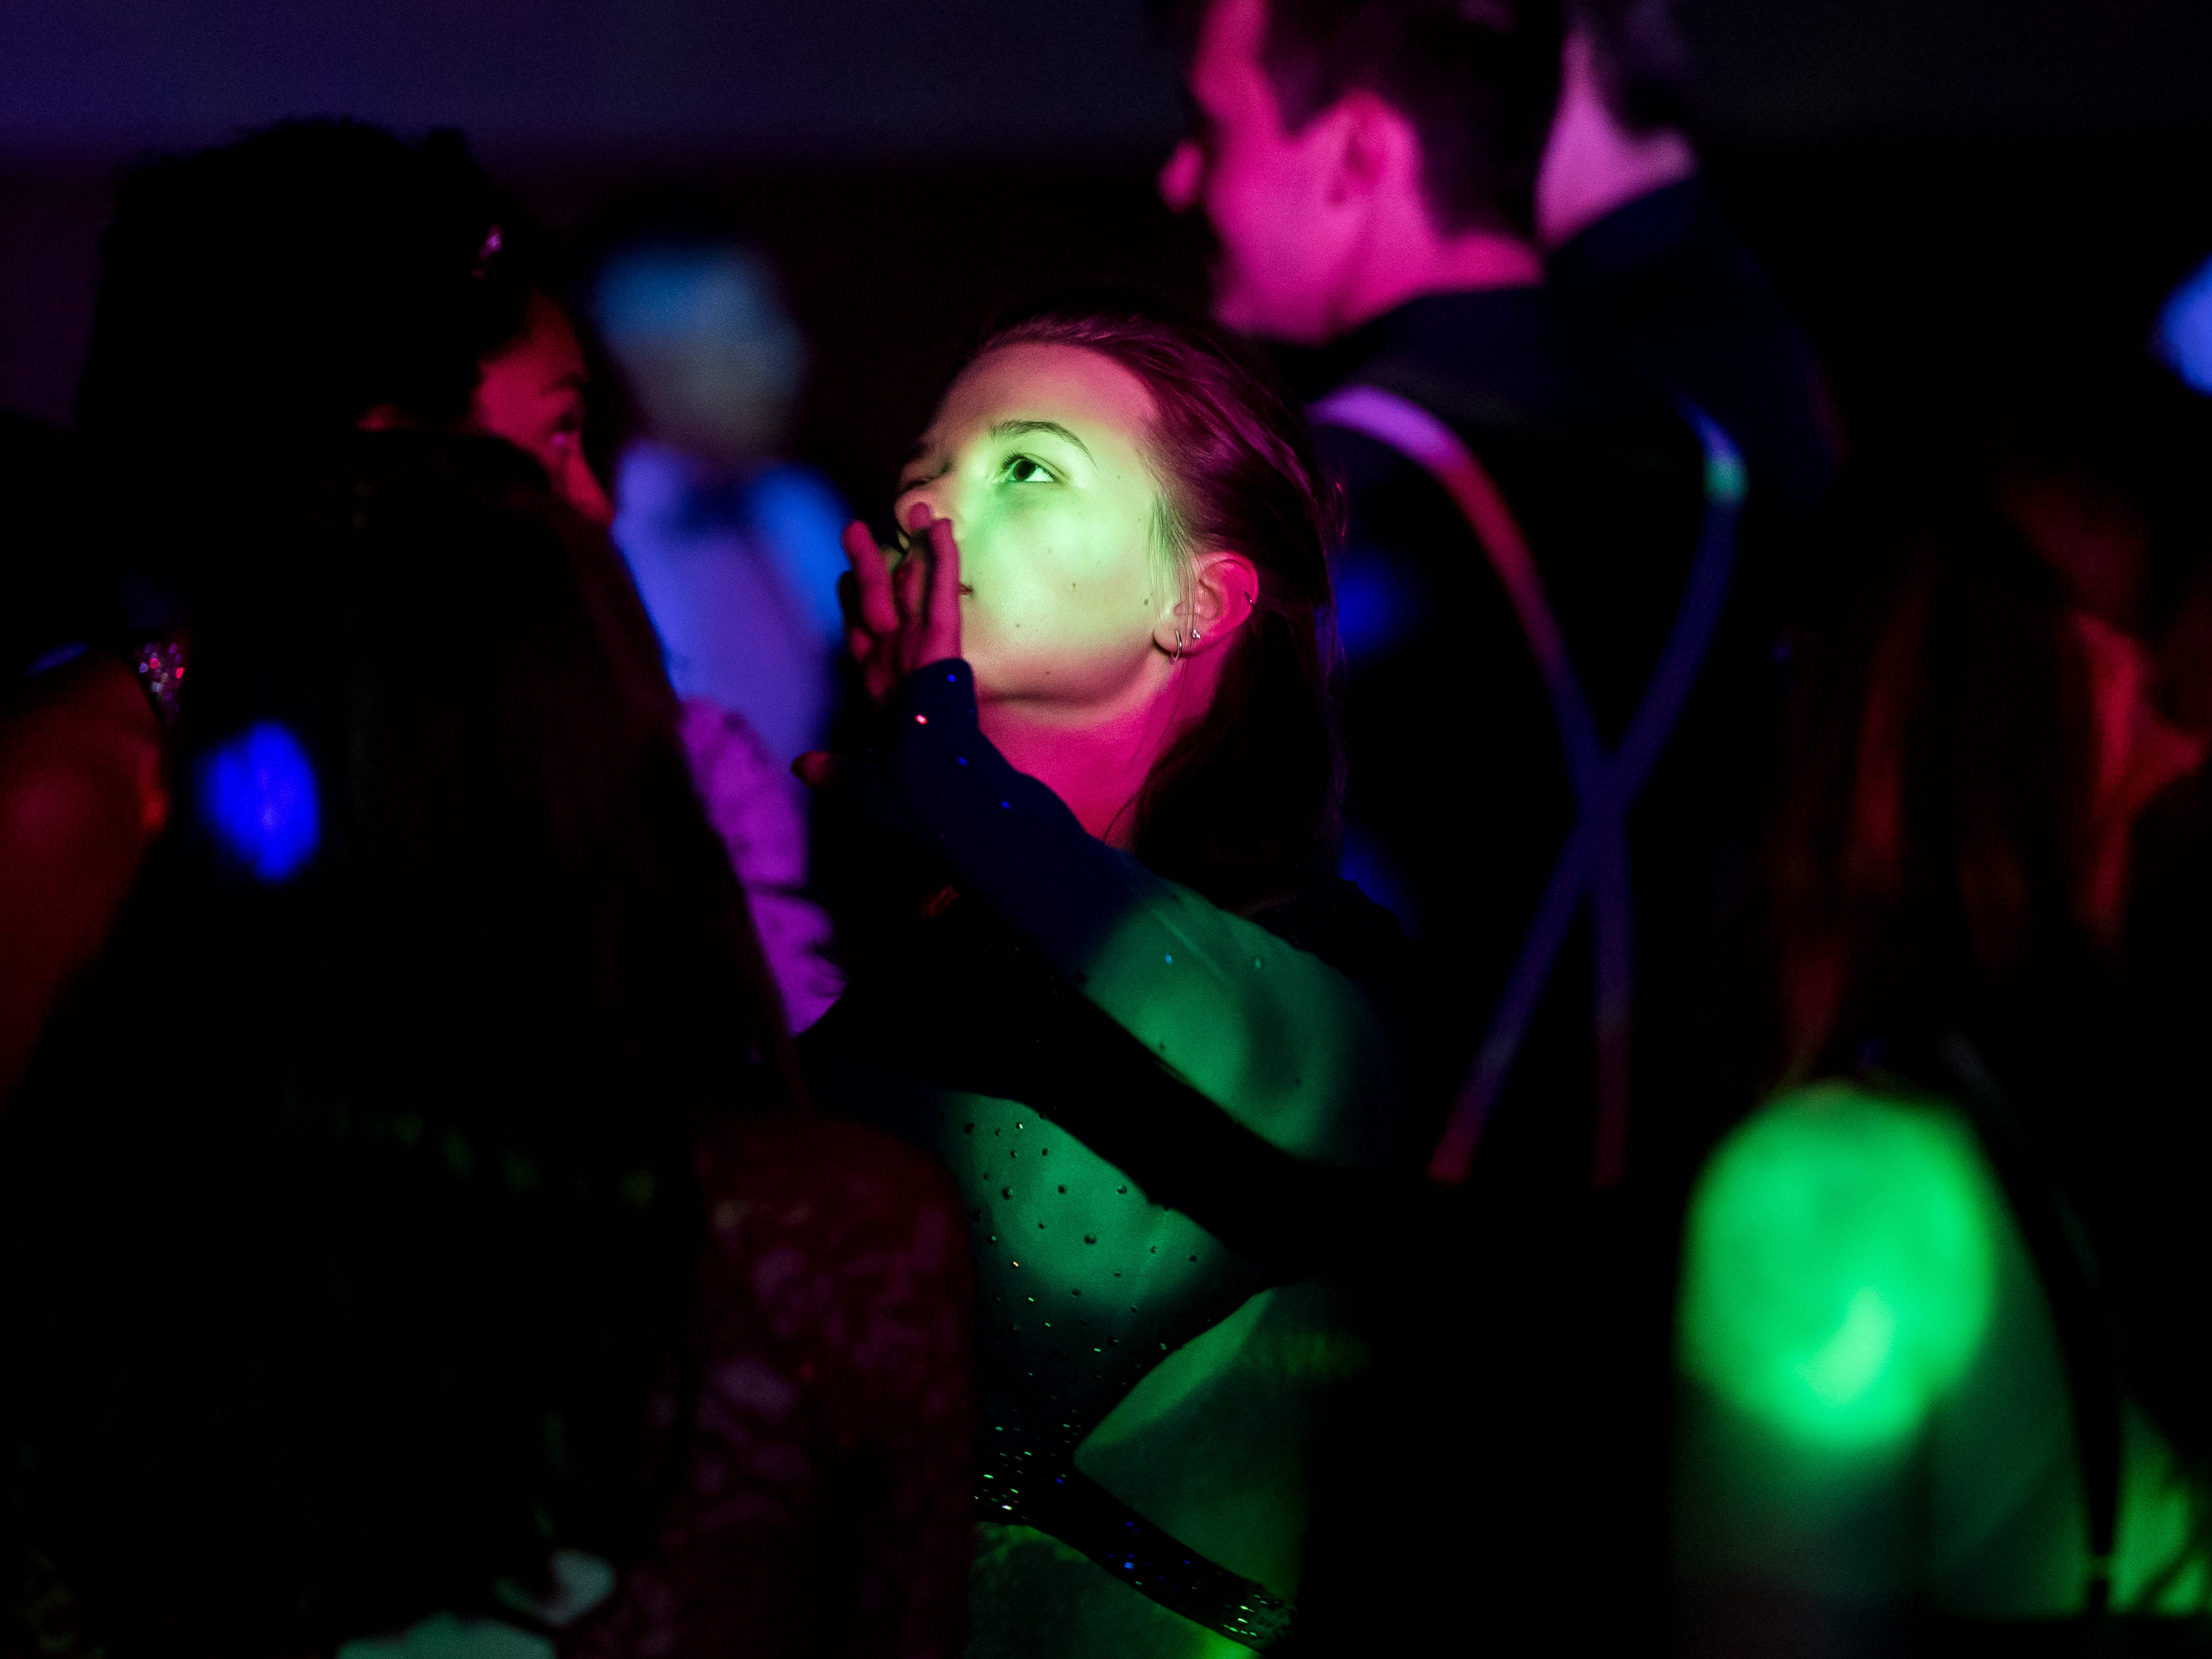 Students attend Hanover High School's homecoming dance on Saturday, September 15, 2018.